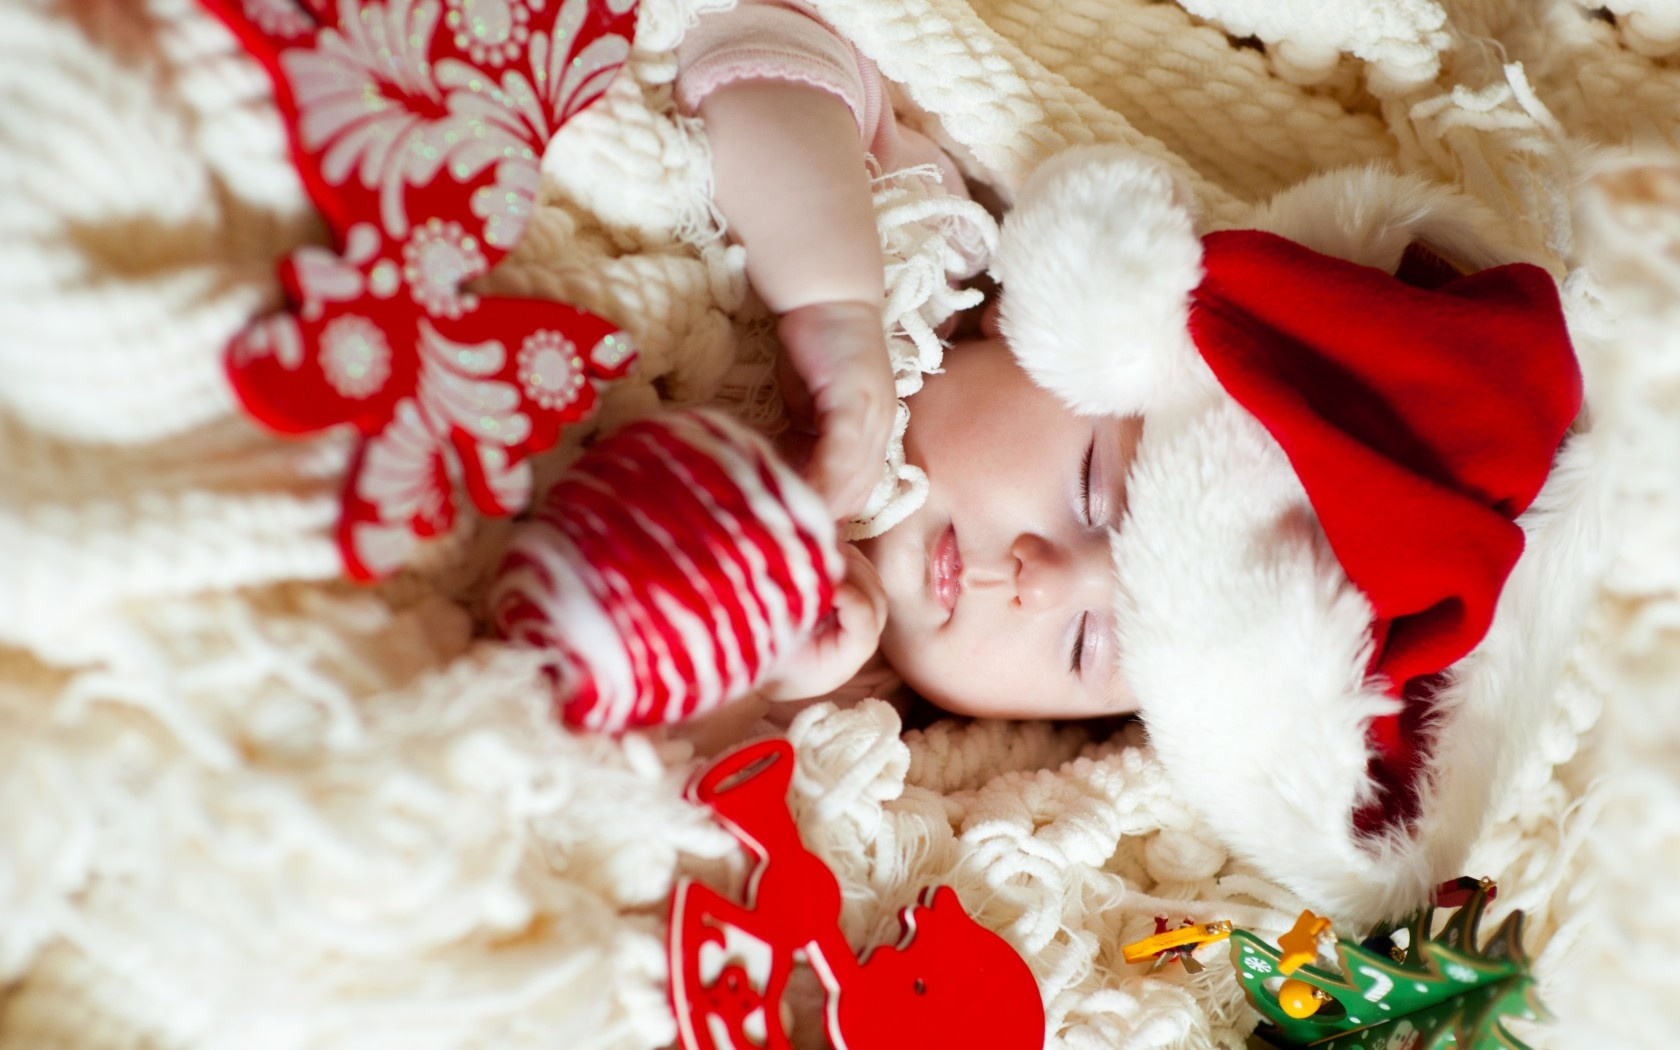 merry christmas wallpapers child